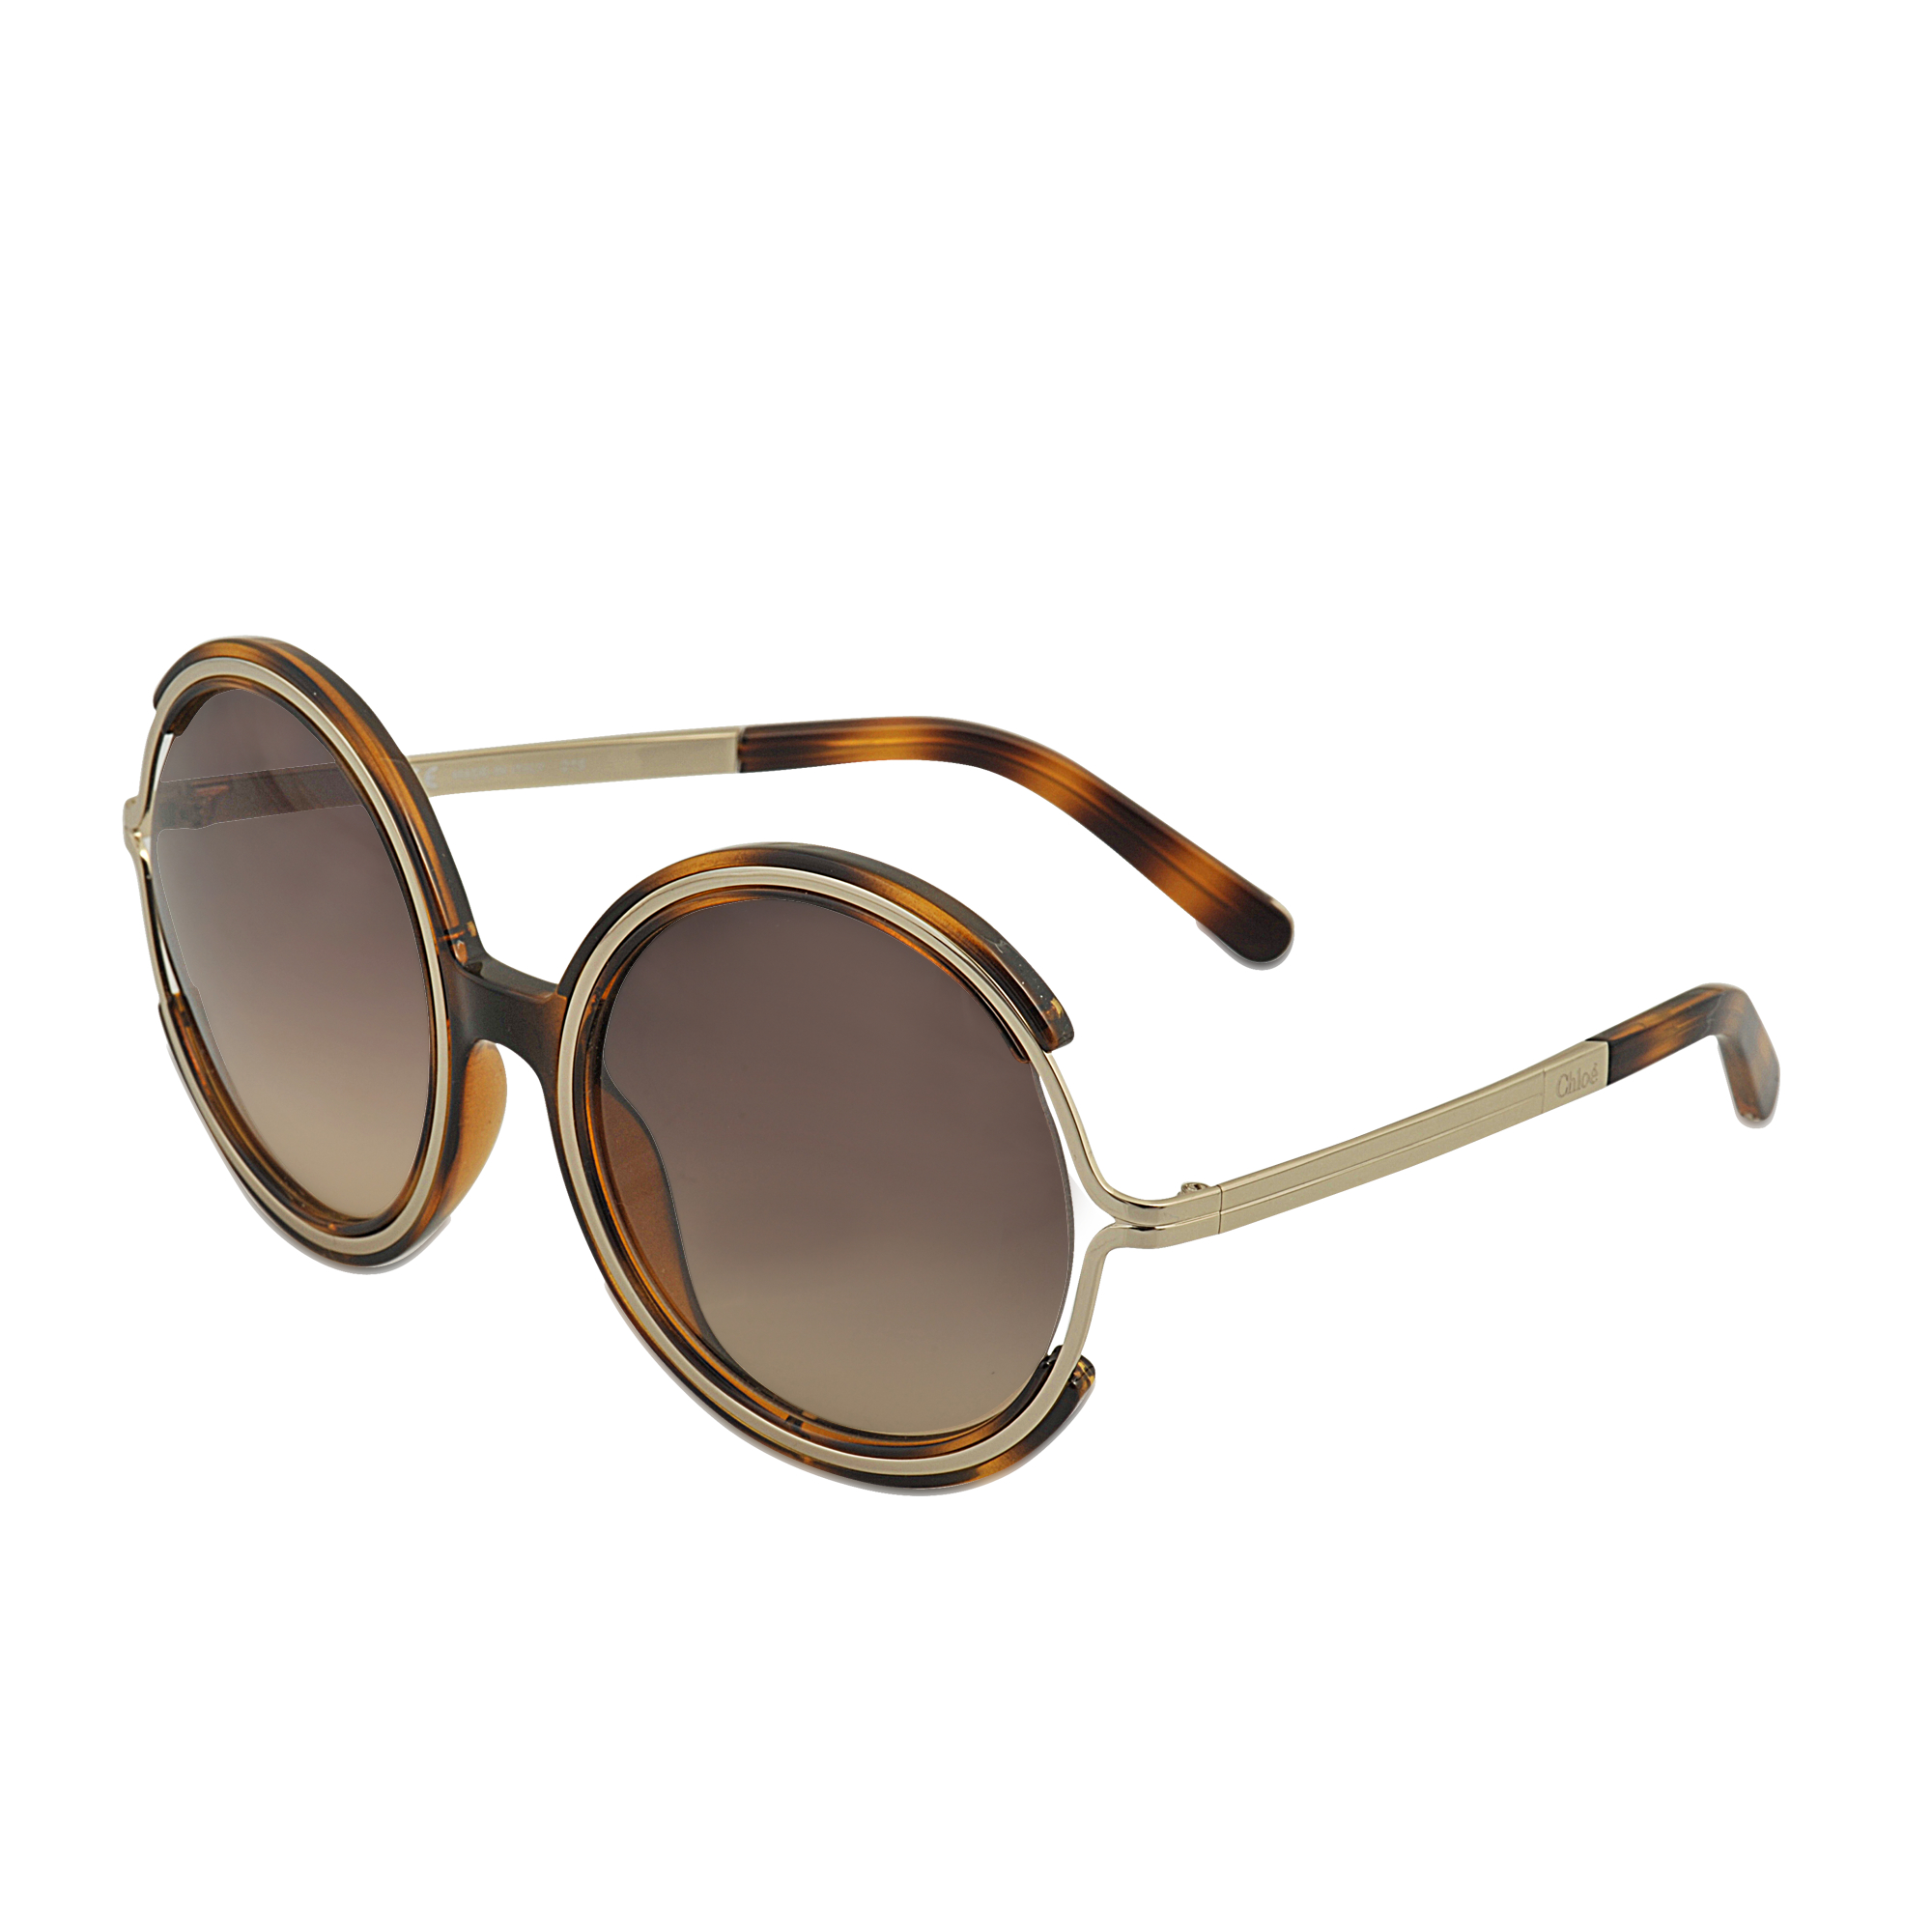 ee6564ead93 Chloé Ce708s Jayme Sunglasses in Natural - Lyst